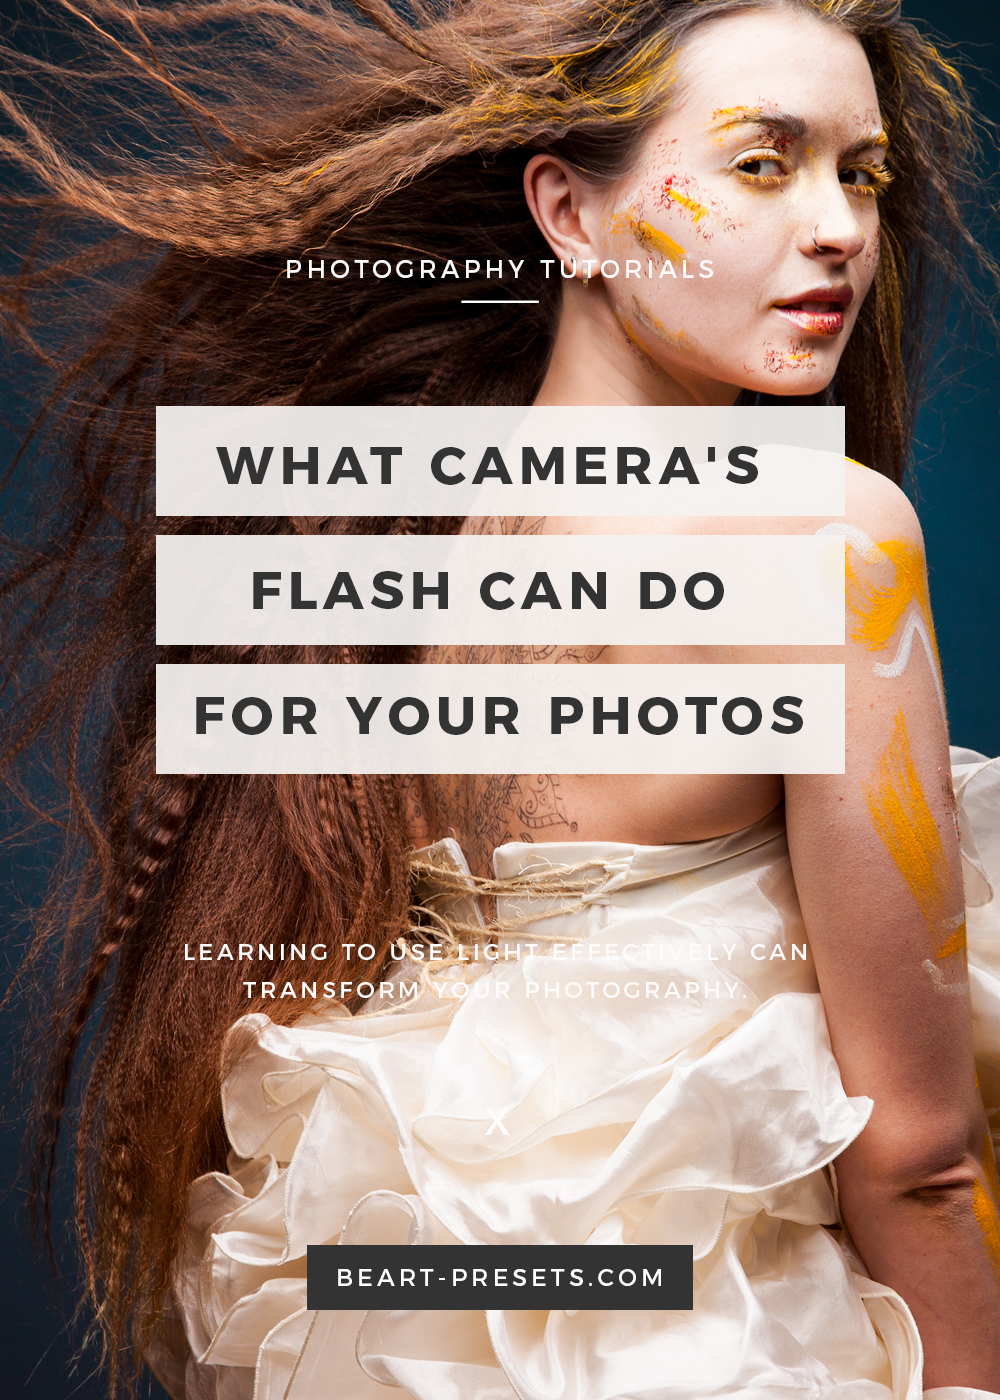 DSLR camera's flash